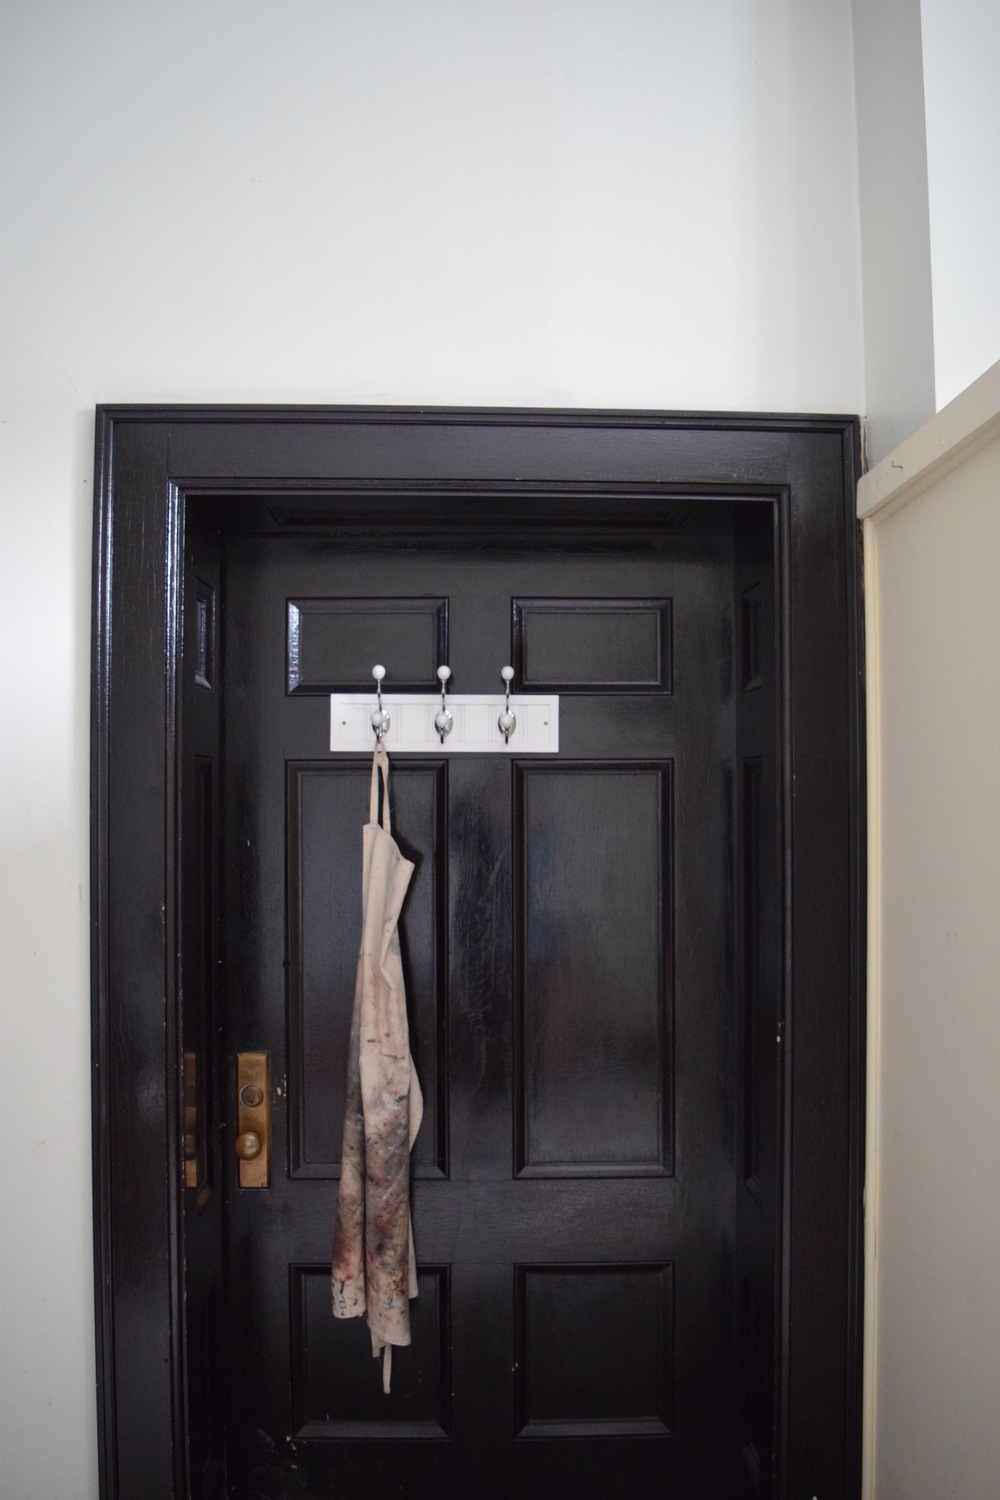 The door to my loft studio on Germain Street. I claimed it with my paint apron.